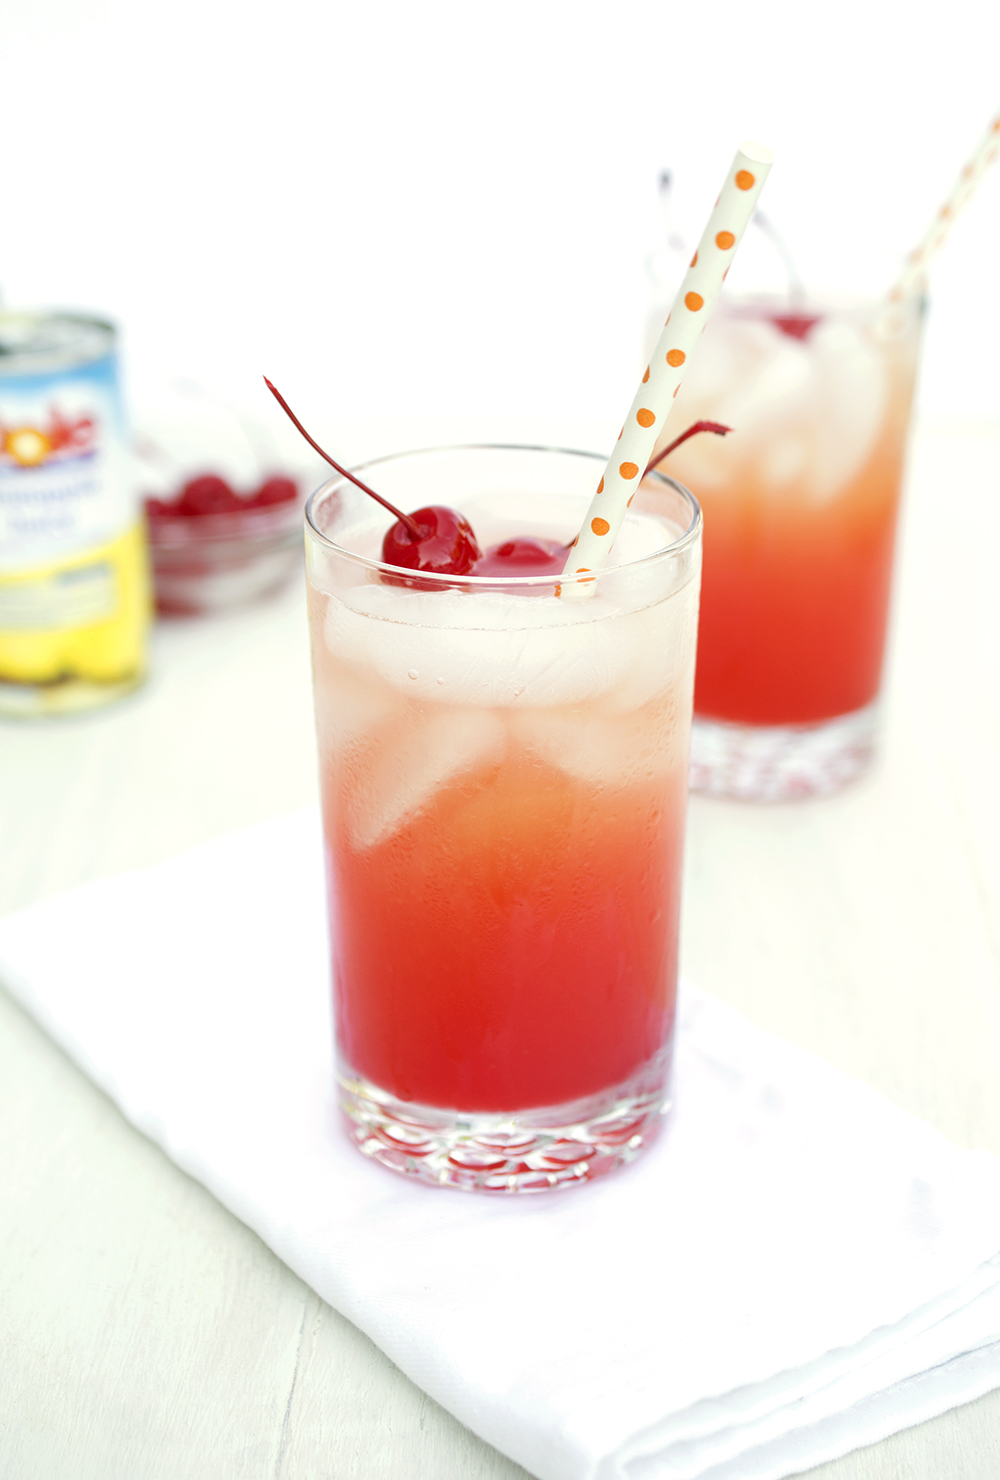 Malibu Sunrise Drink Recipe